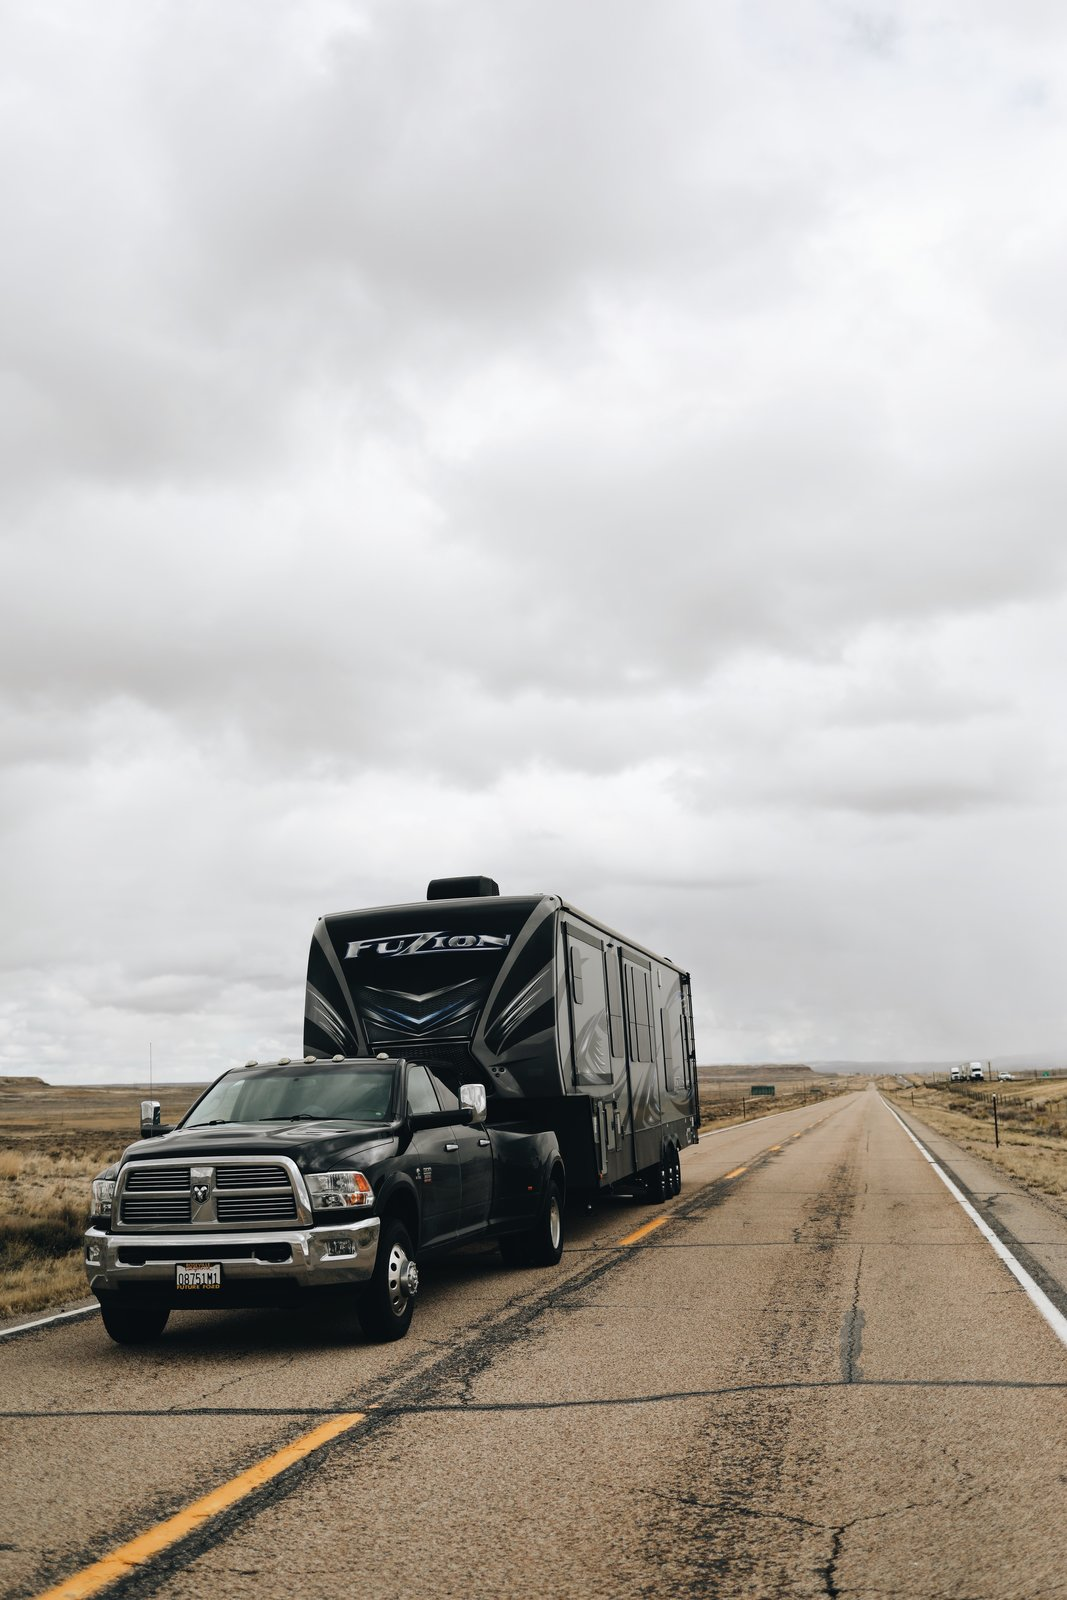 Because most toy haulers are designed predominantly for short weekend getaways, after about six months of owning their trailer, the couple felt compelled to find ways to upgrade it for more efficient family living.